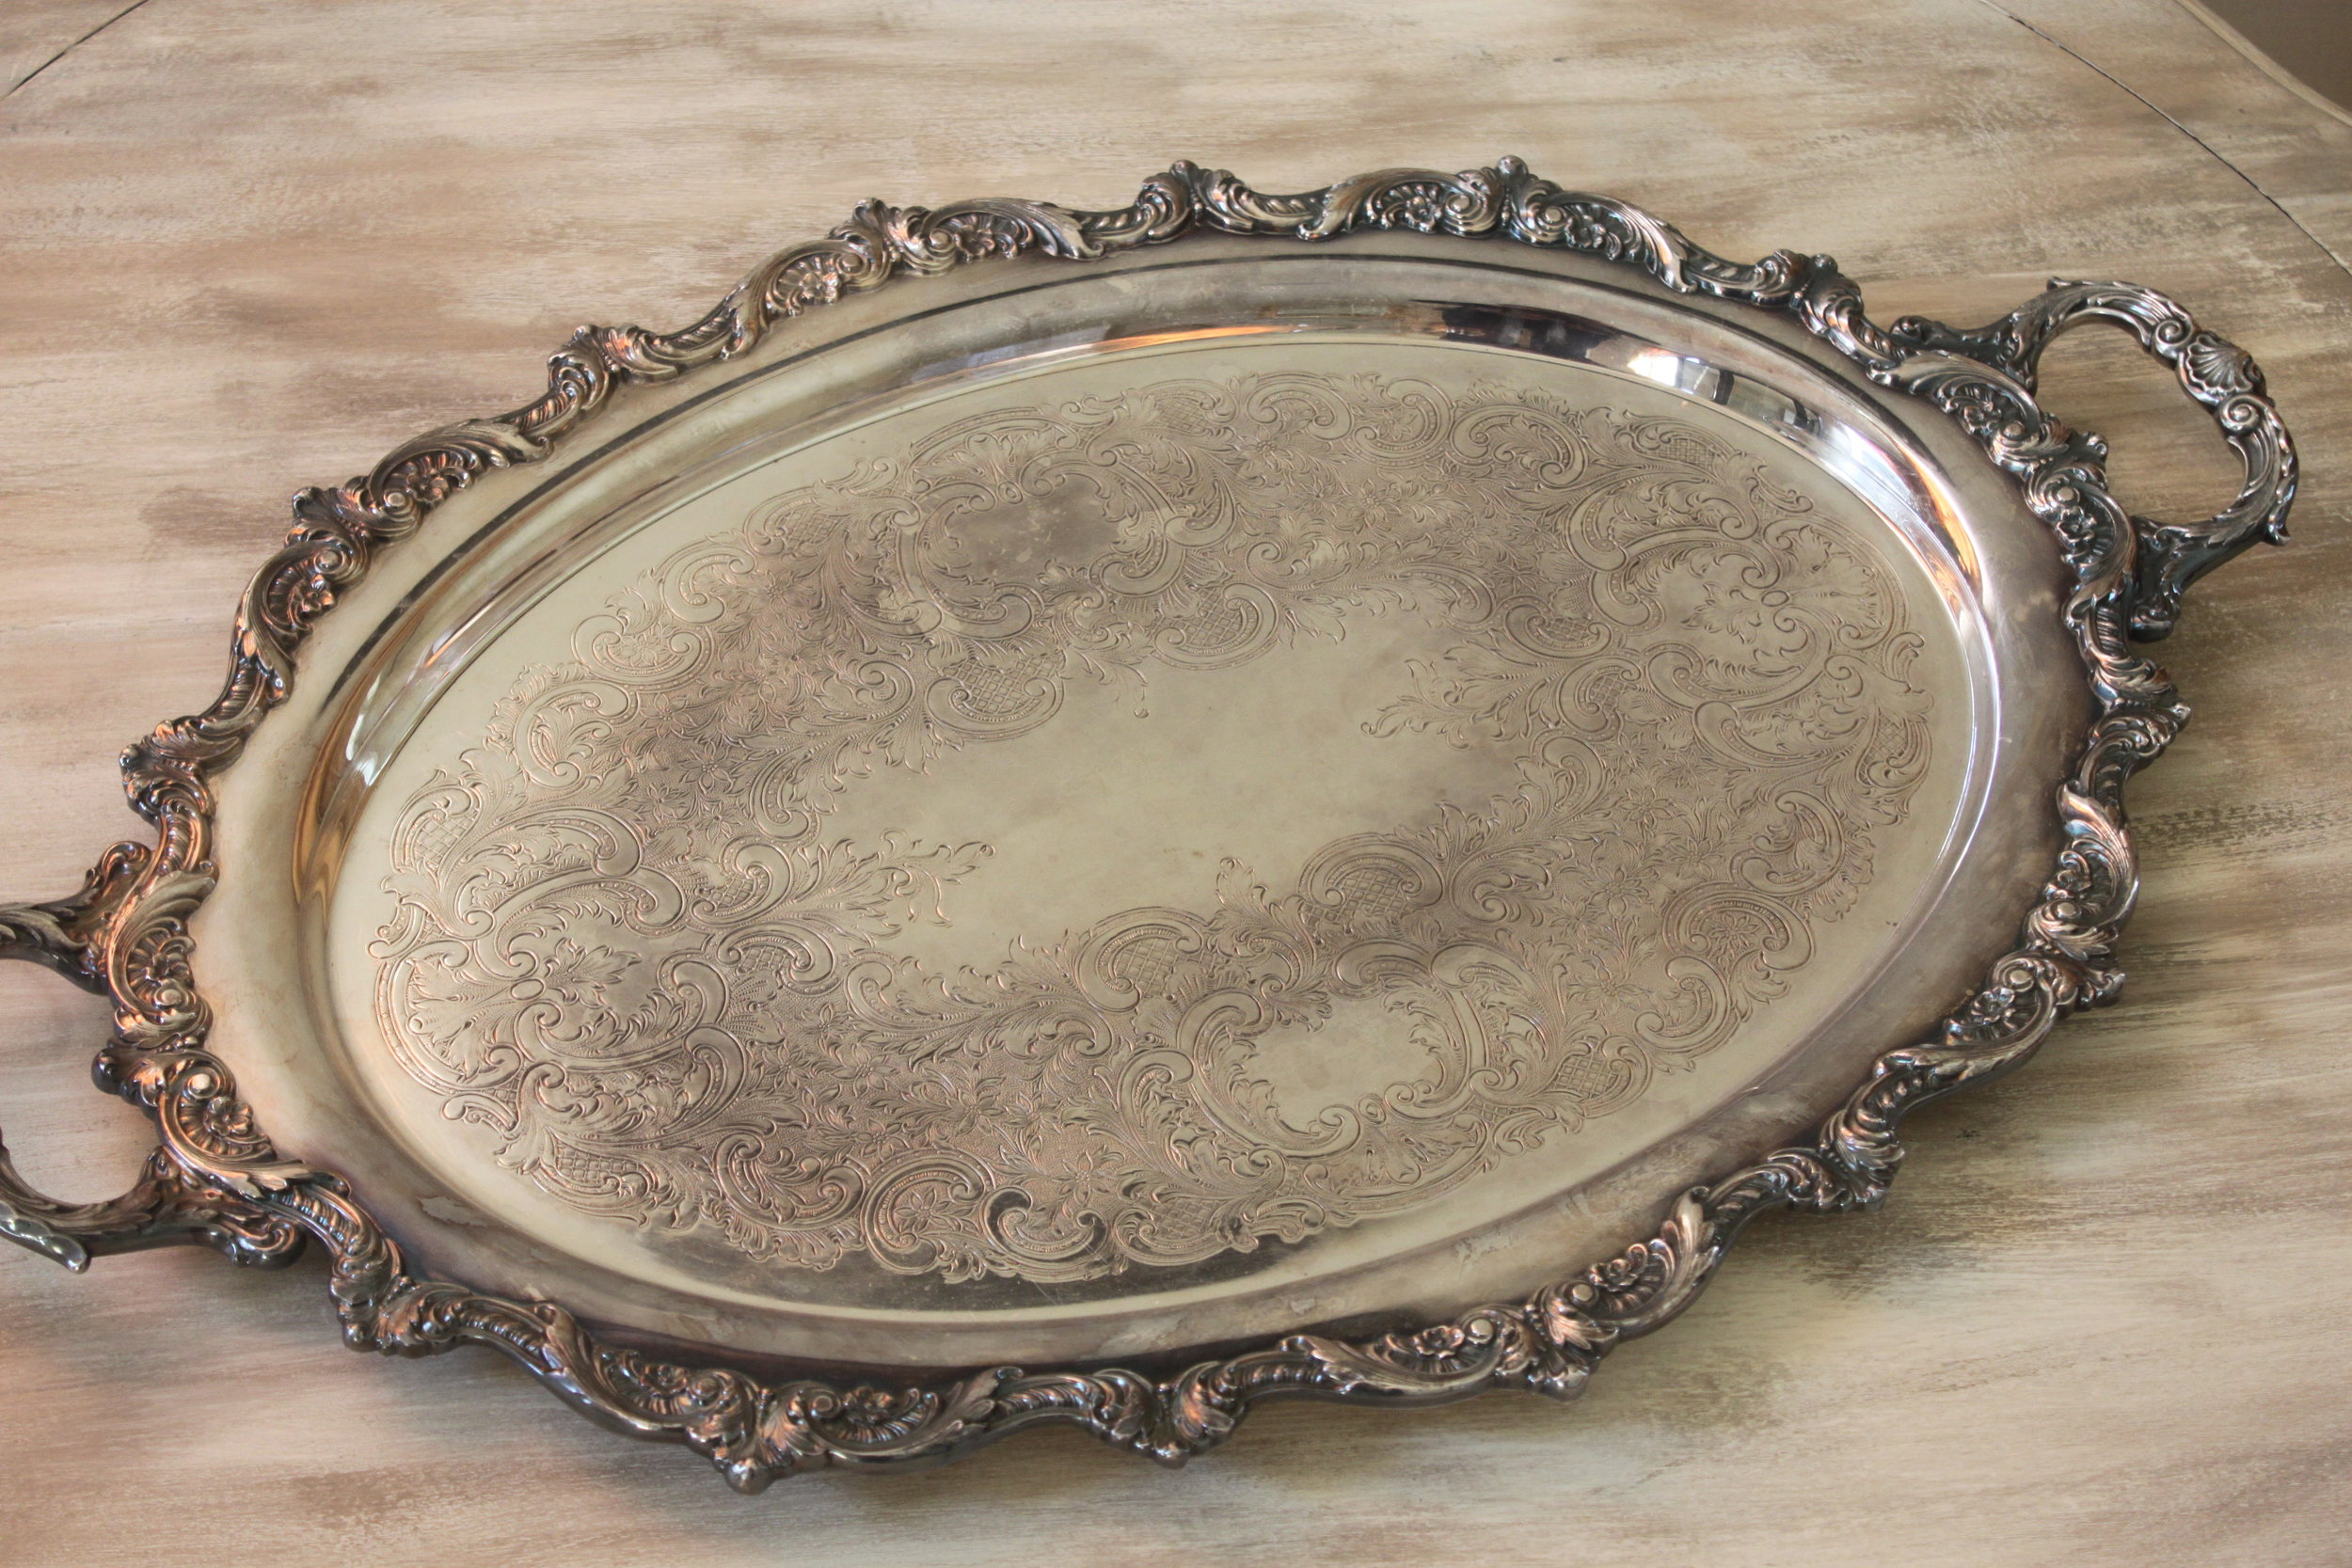 Copy of Bristol Silver Tray $15